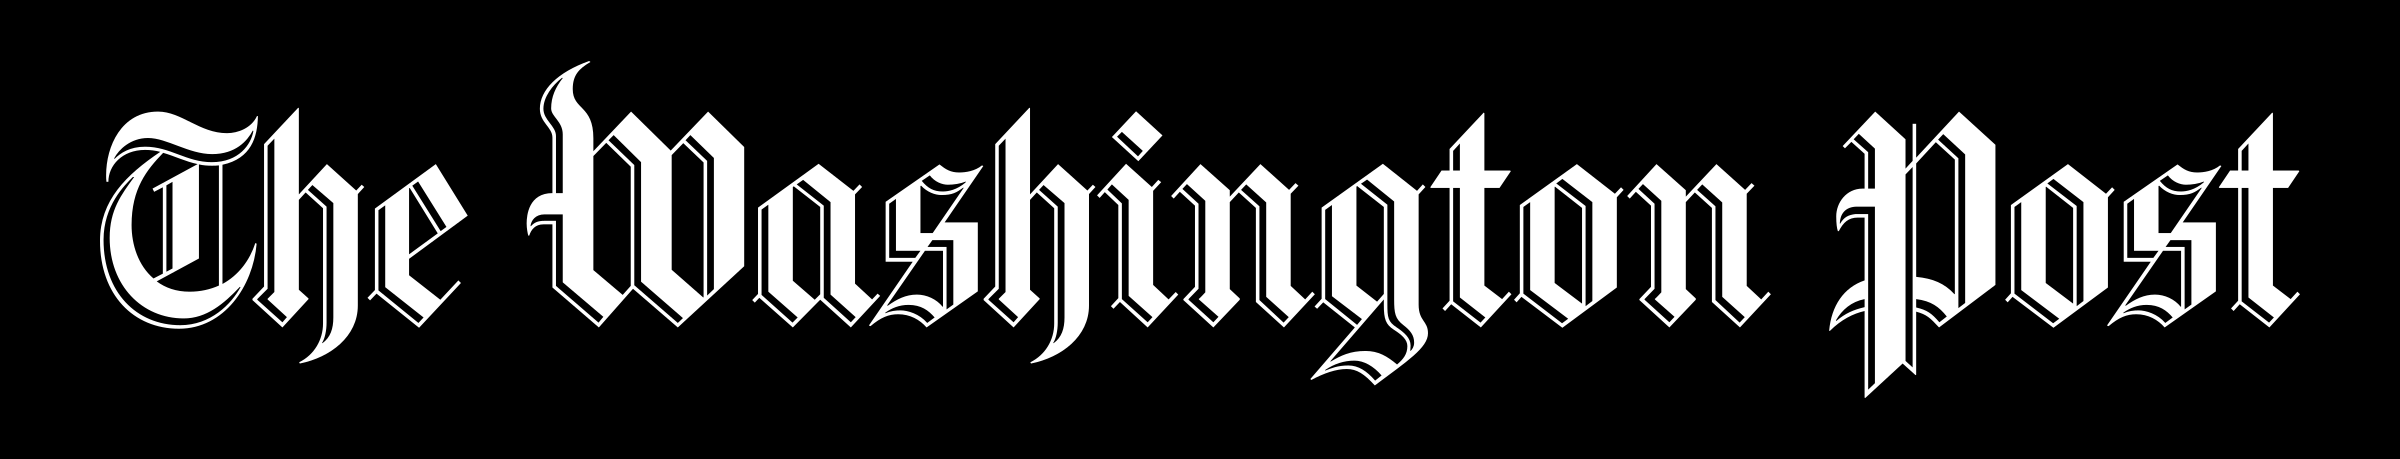 Image result for the washington post logo